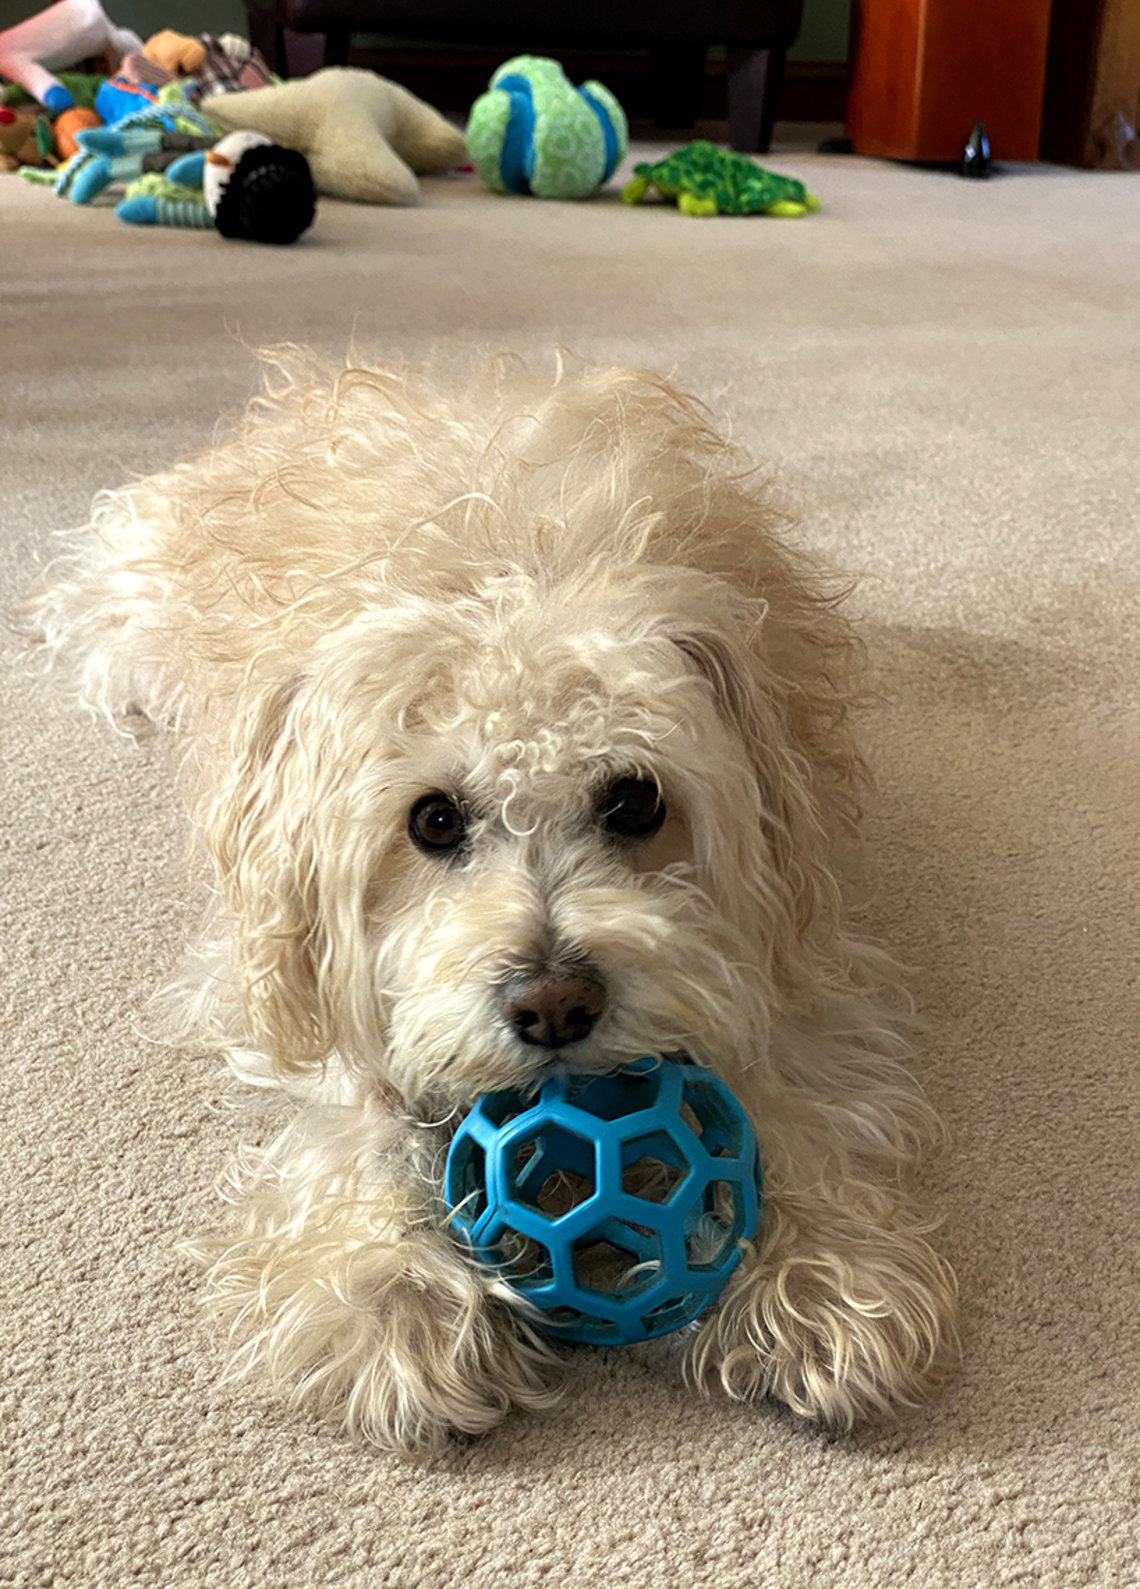 White dog with blue ball in his mouth looks into camera.